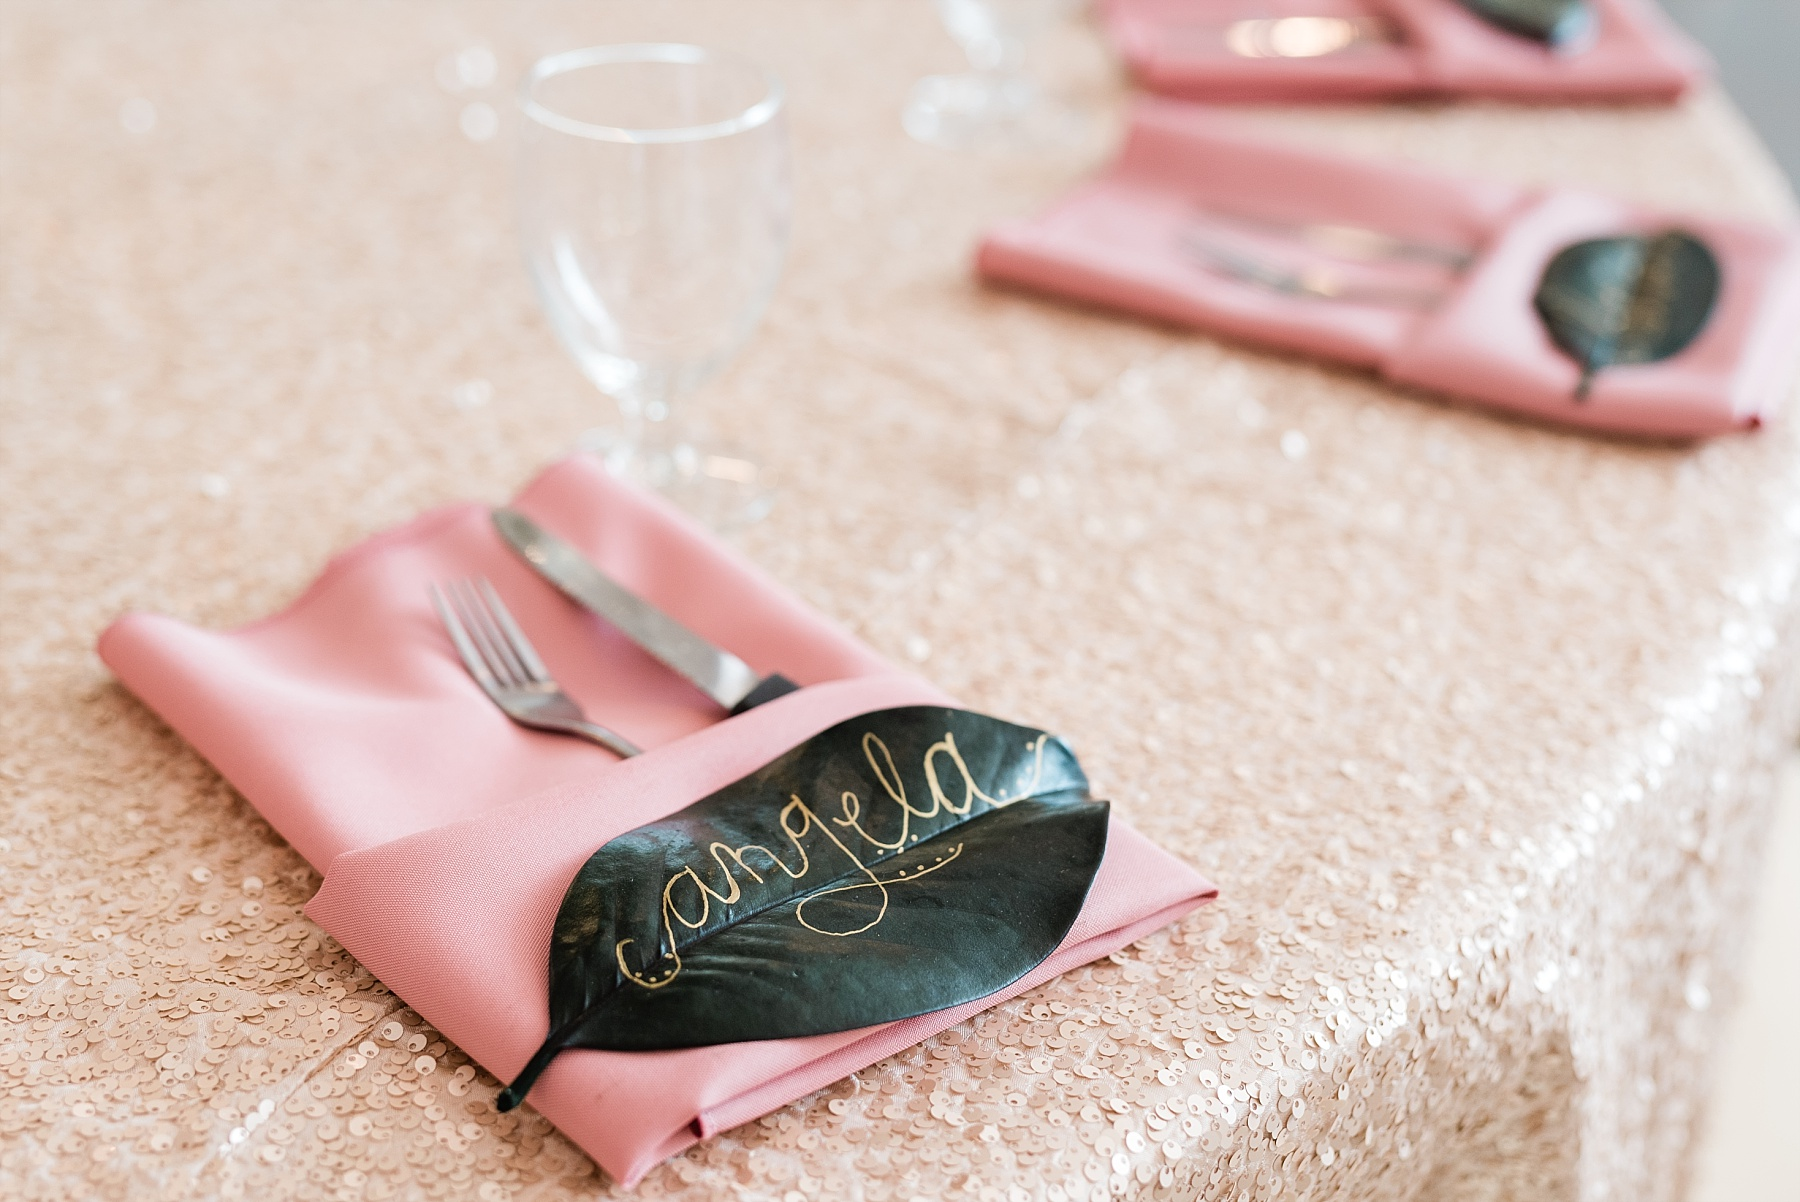 Stunning Heartfelt, Elegant, Fine Art, Chic, Outdoor Spring Wedding with Blush, Cream, Greenery, Rose Gold, and Sequins at Emerson Fields Venue by Kelsi Kliethermes Photography_0040.jpg